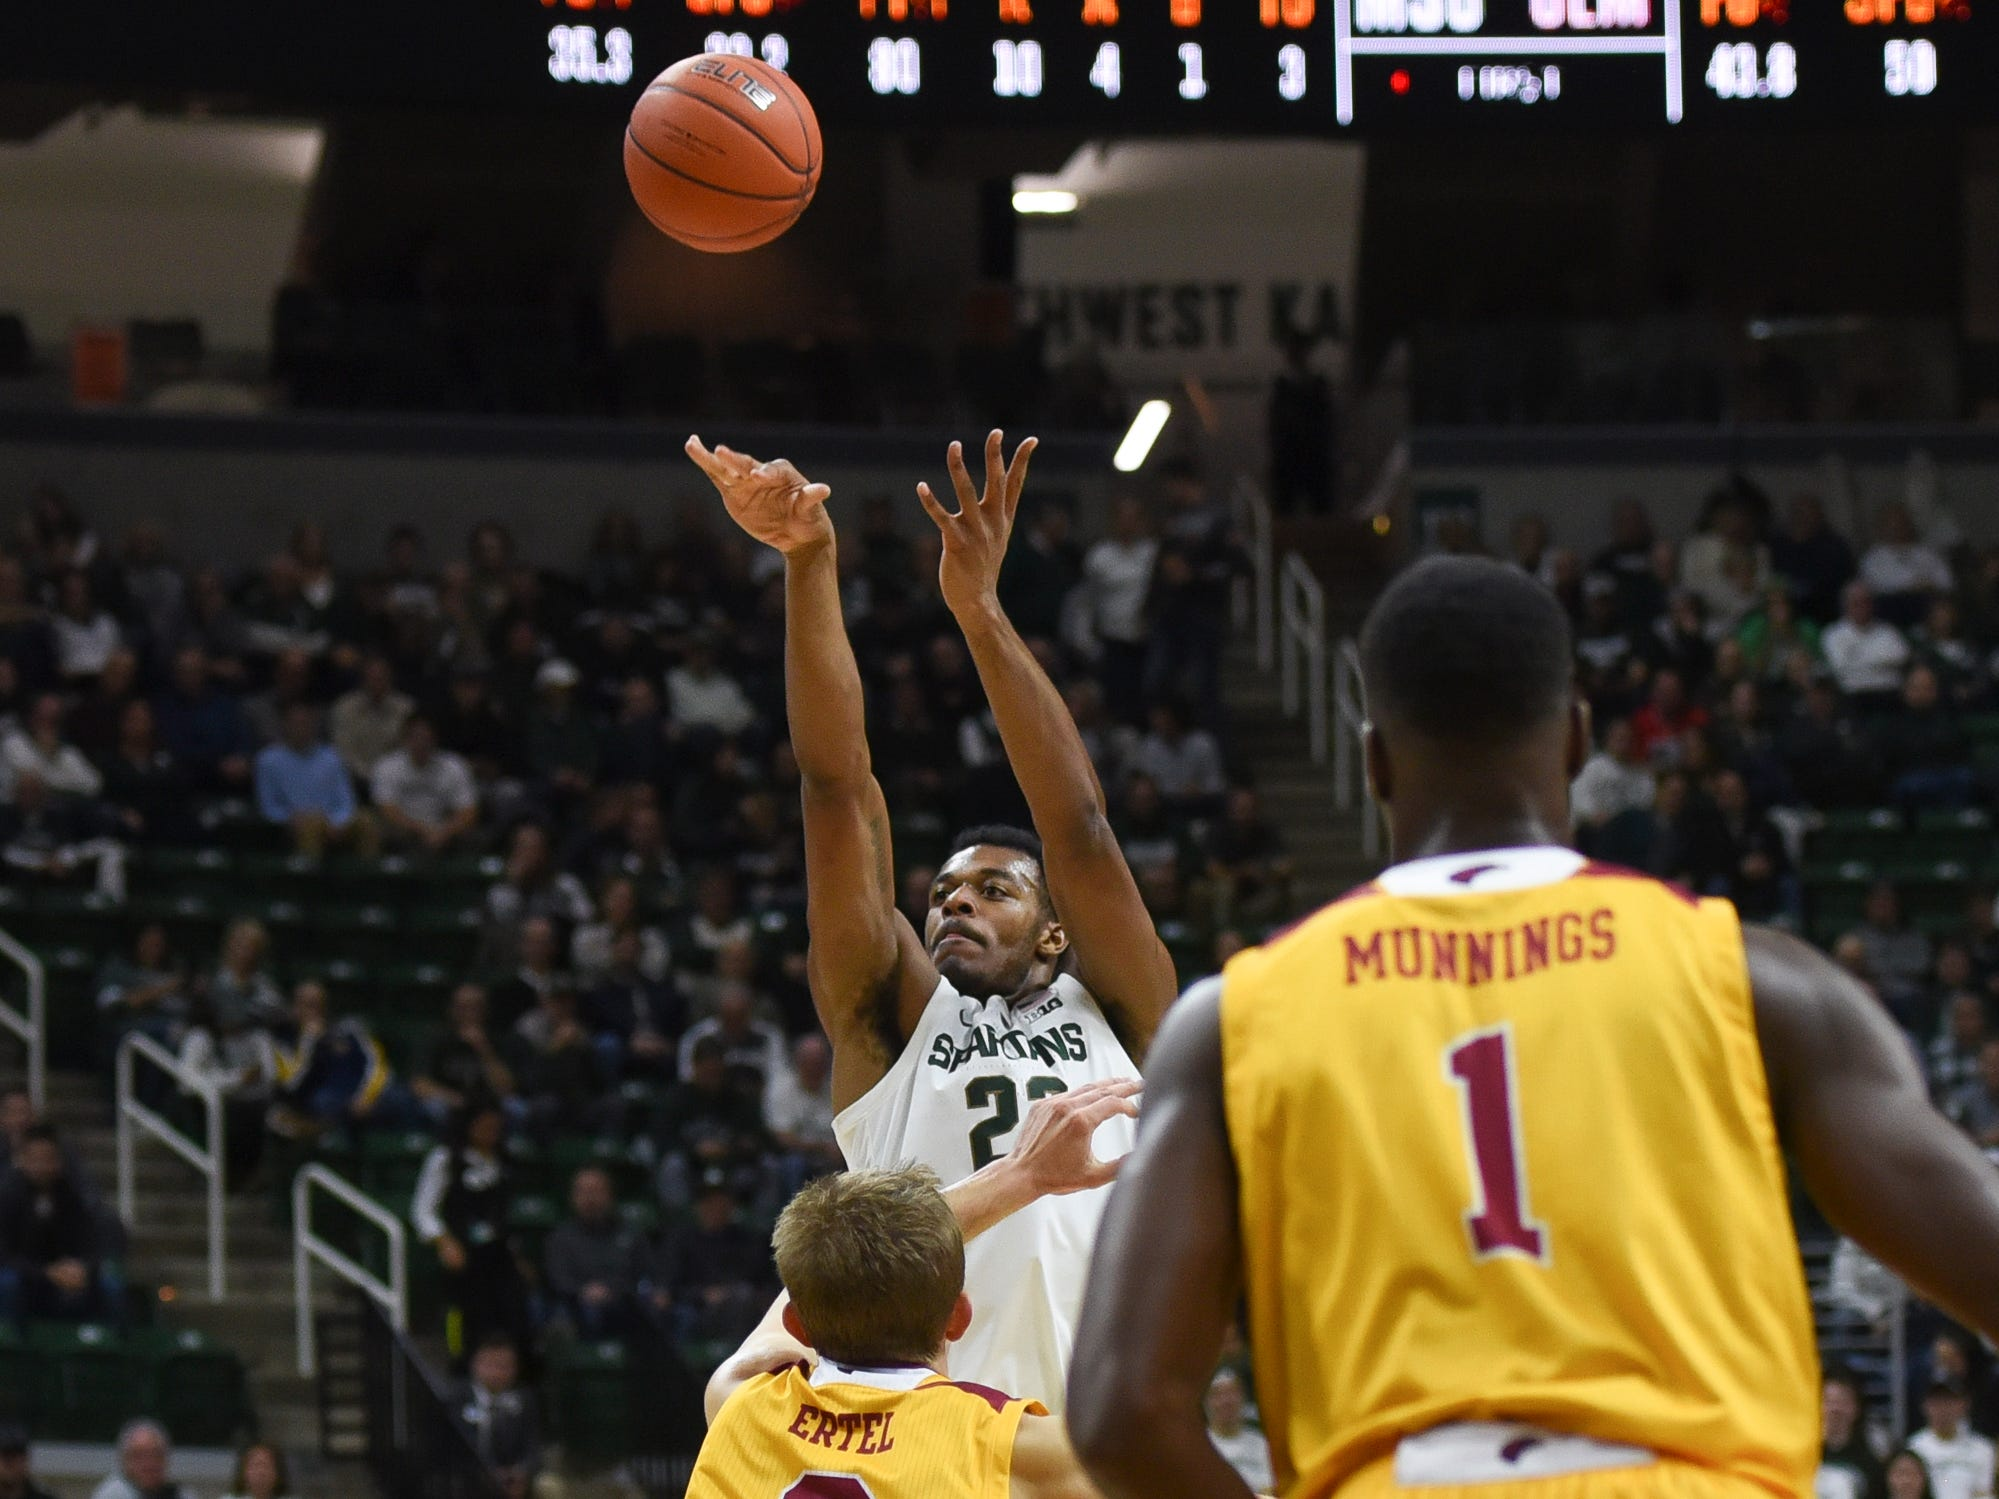 MSU's Xavier Tillman shoots against Michael Ertel of Louisiana-Monroe Wednesday, Nov. 14, 2018, at the Breslin Center.  MSU won 80-59.